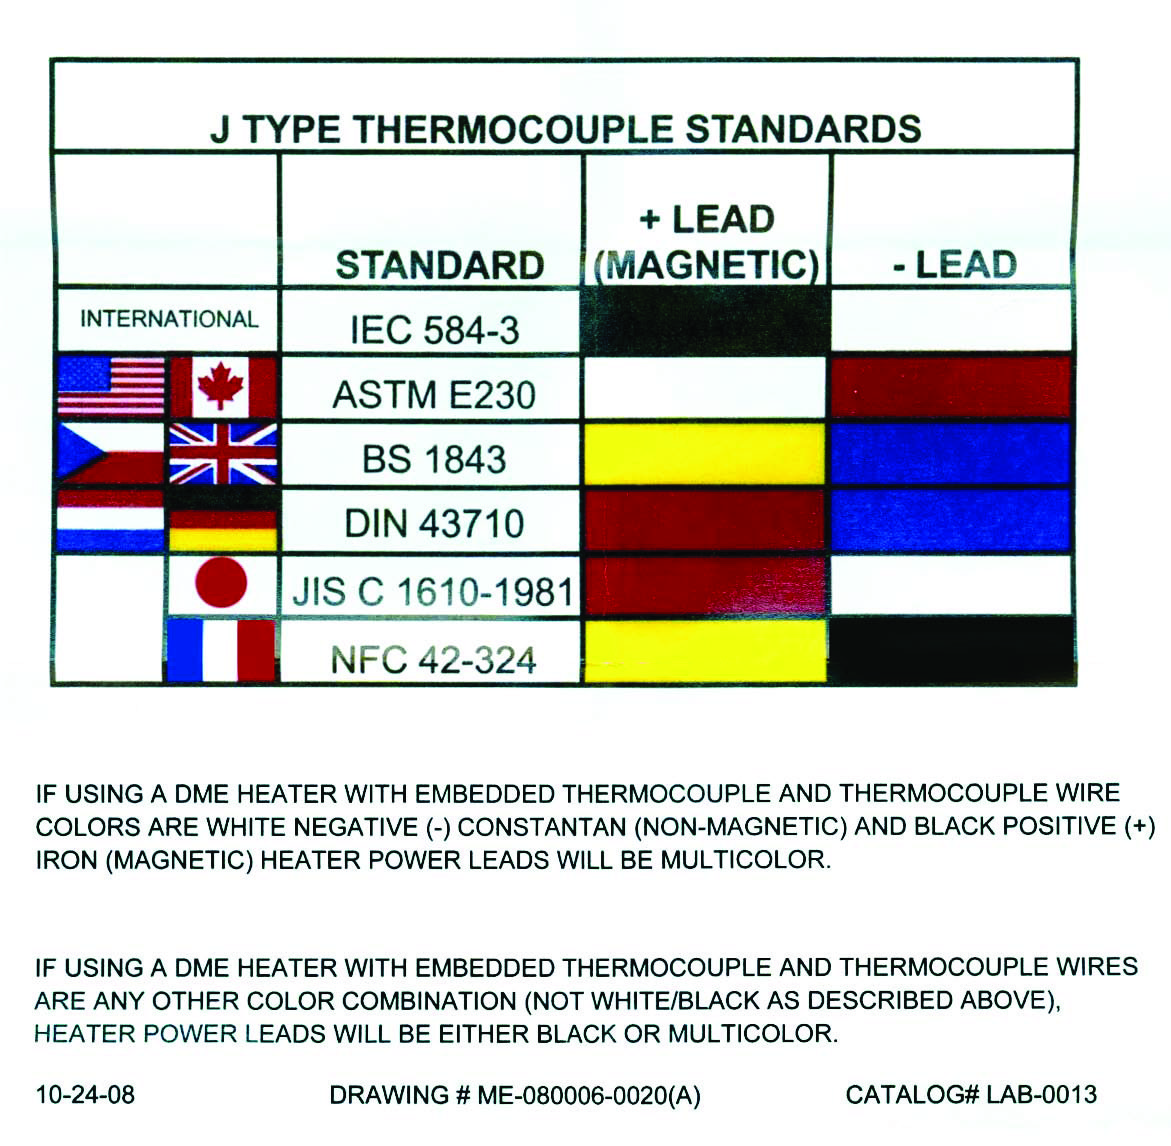 thermocouple wire standards